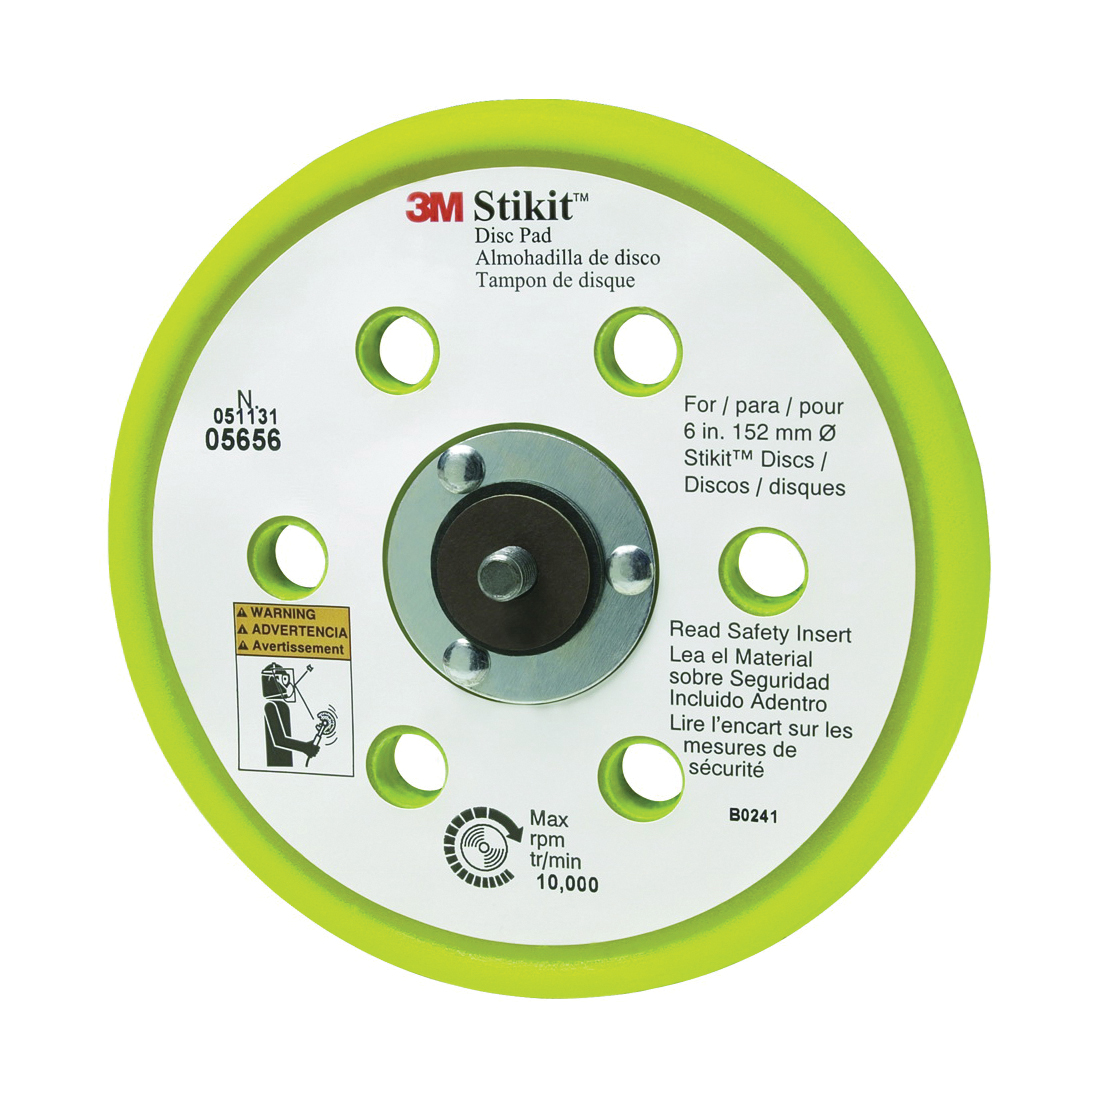 3M™ Stikit™ 051131-05656 Firm Density Low Profile Disc Pad, 6 in Dia Pad, 3M™ Stikit™ Attachment